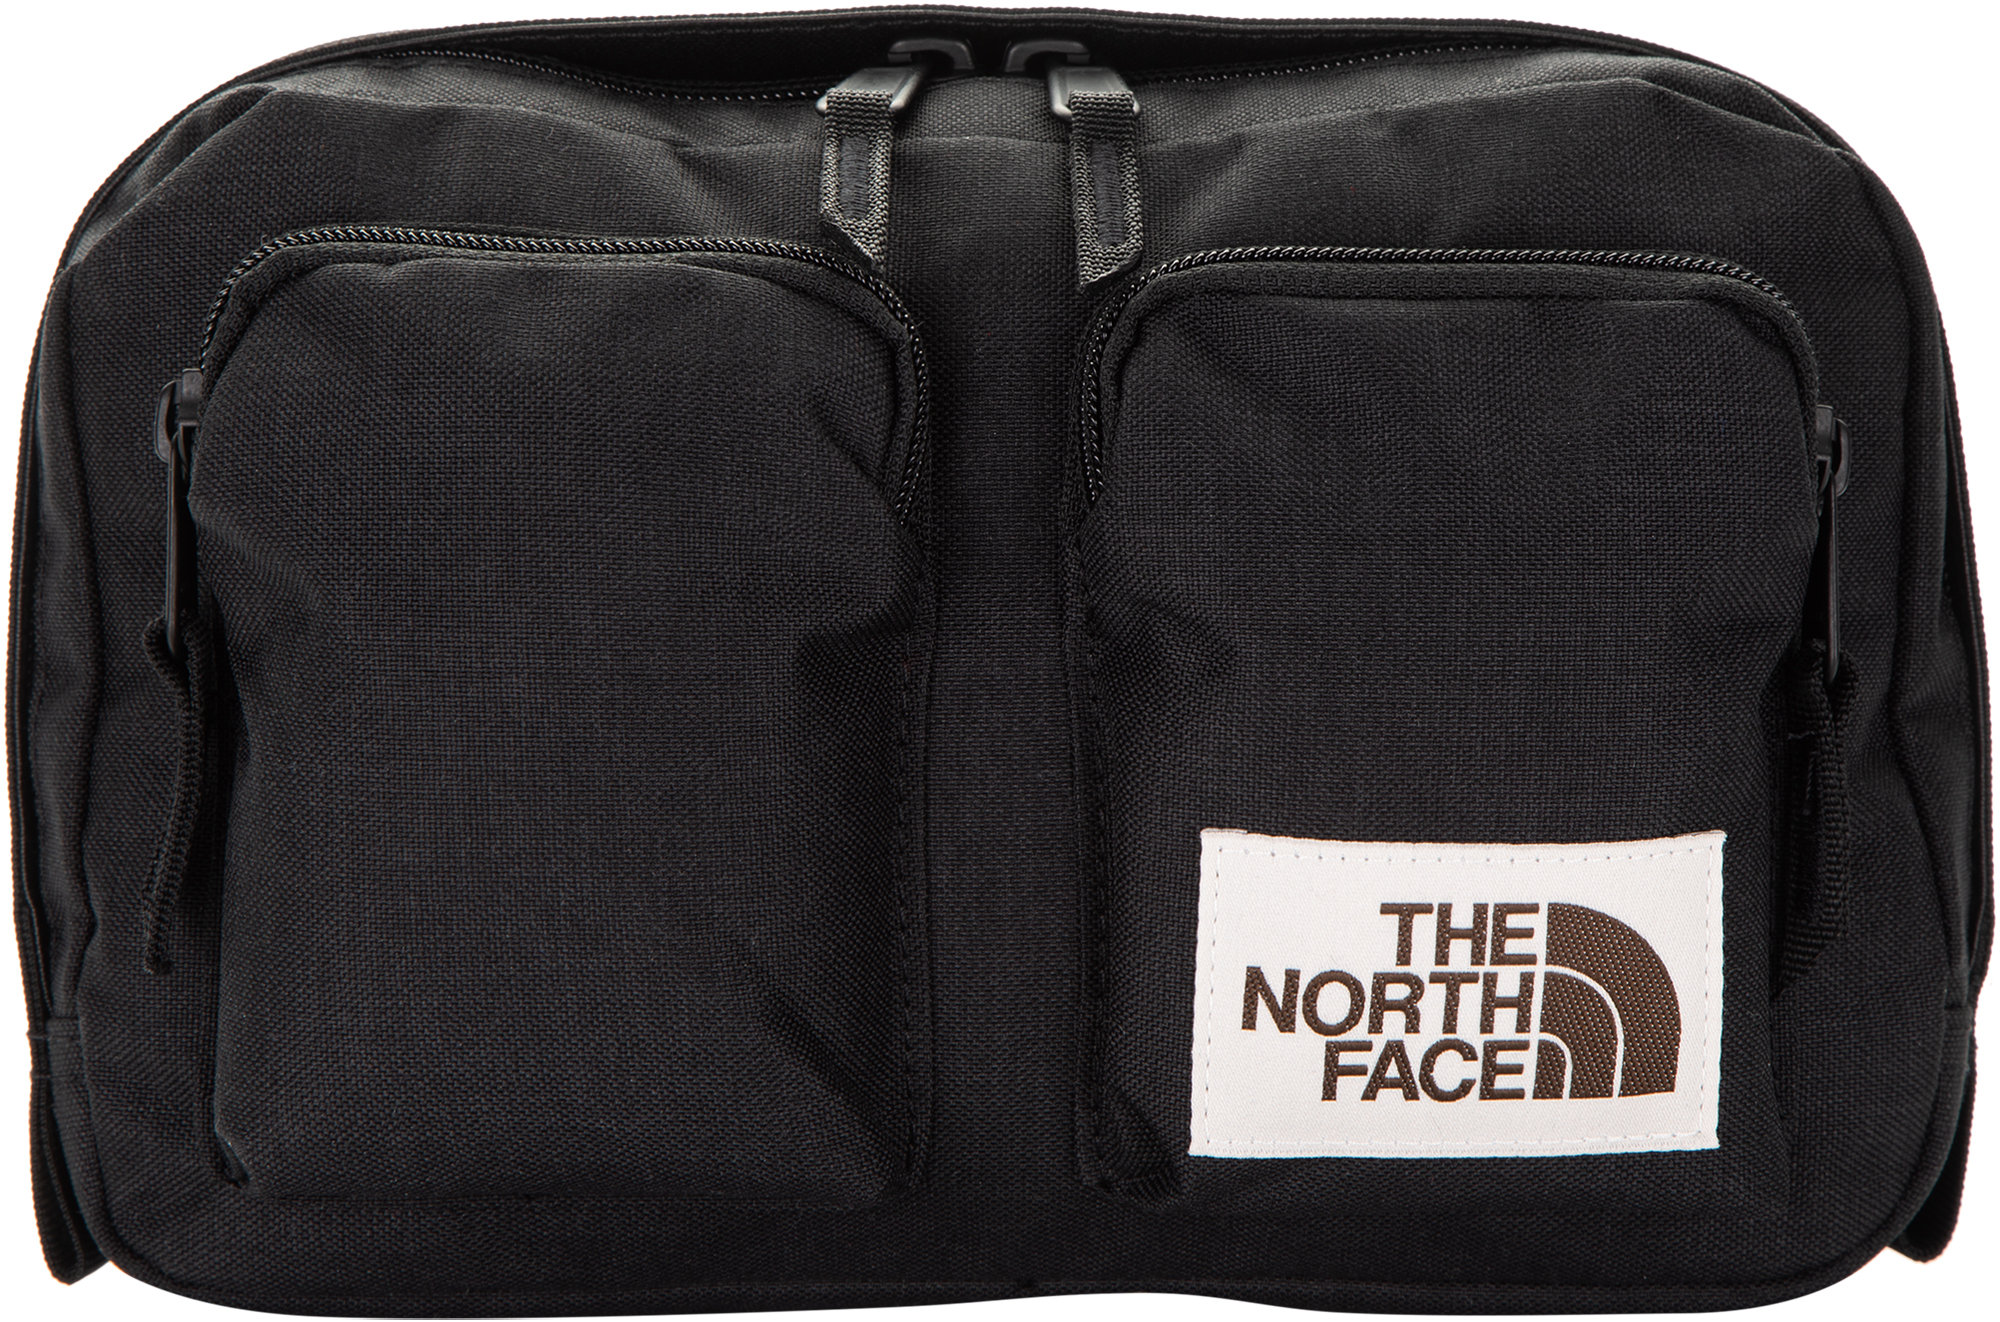 The North Face Сумка на пояс The North Face